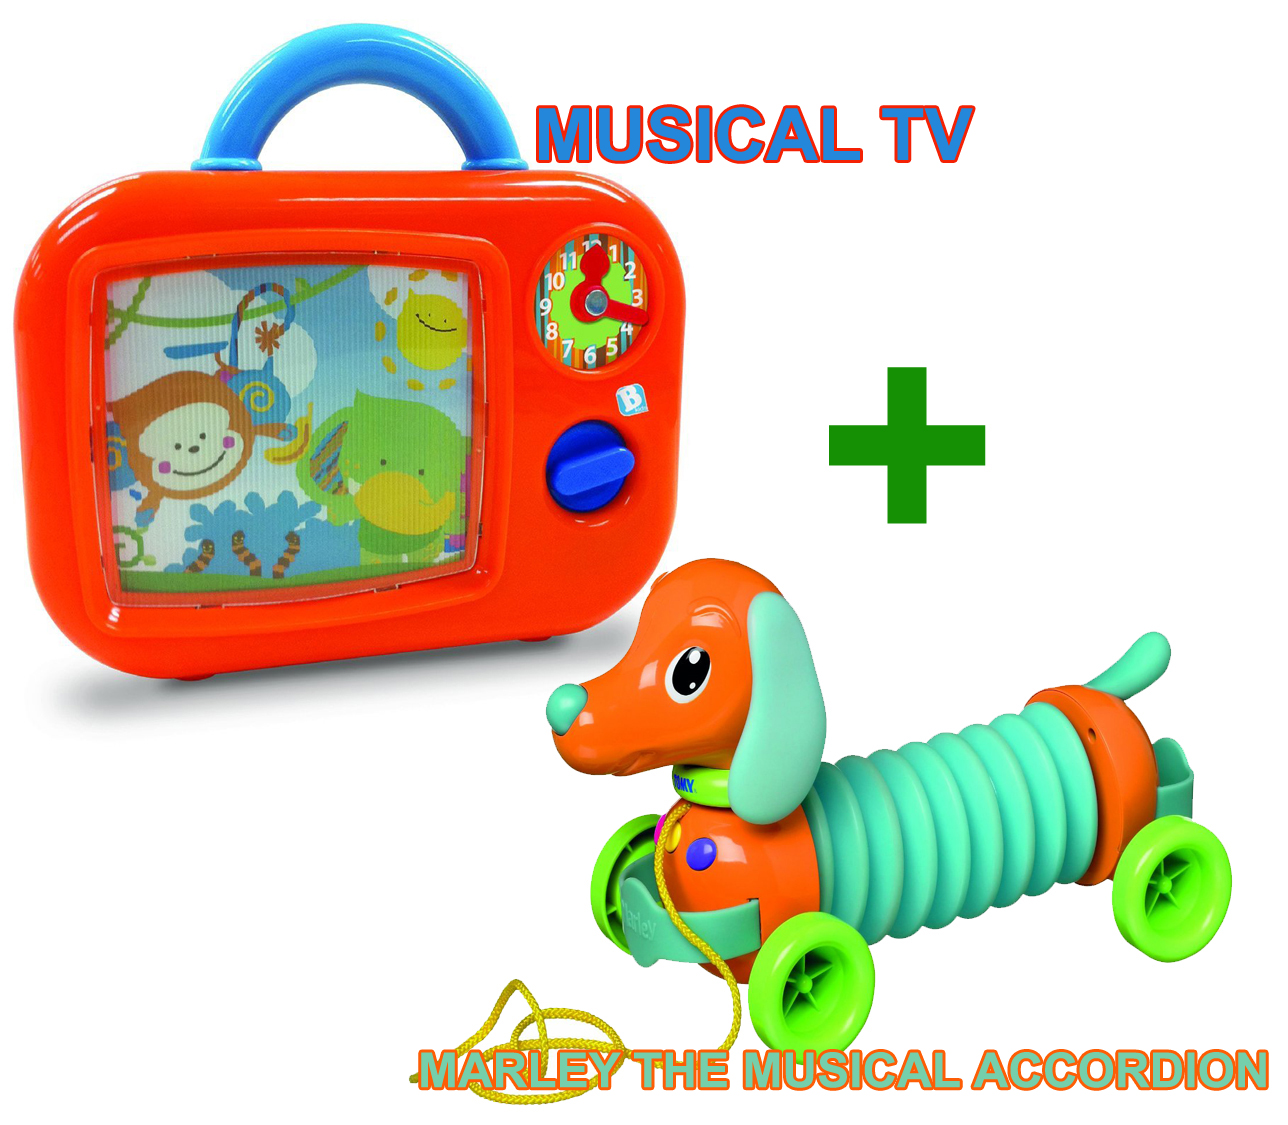 Marley The Musical Accordion and Musical TV